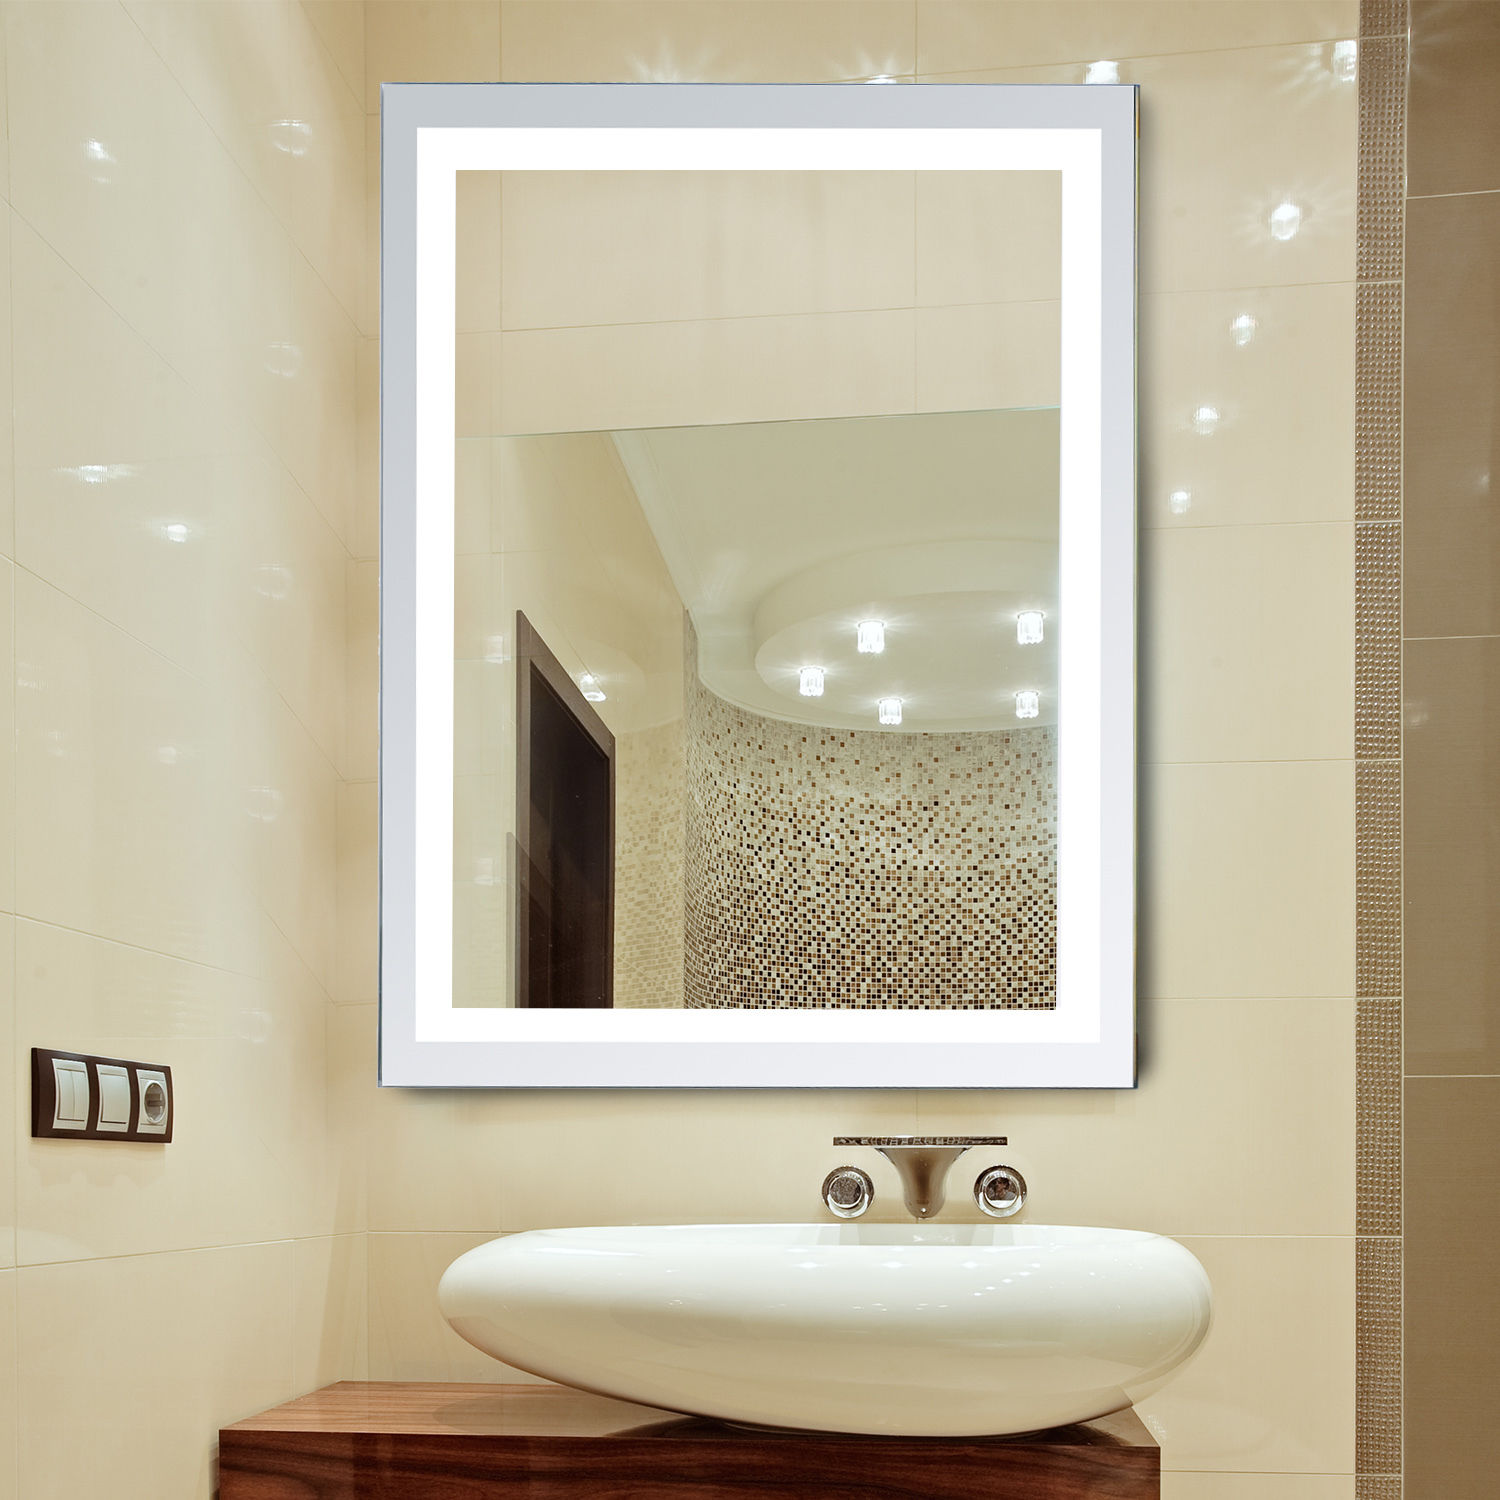 LED Illuminated Backlit Wall Mount Bathroom Vanity Mirror Make Up ...